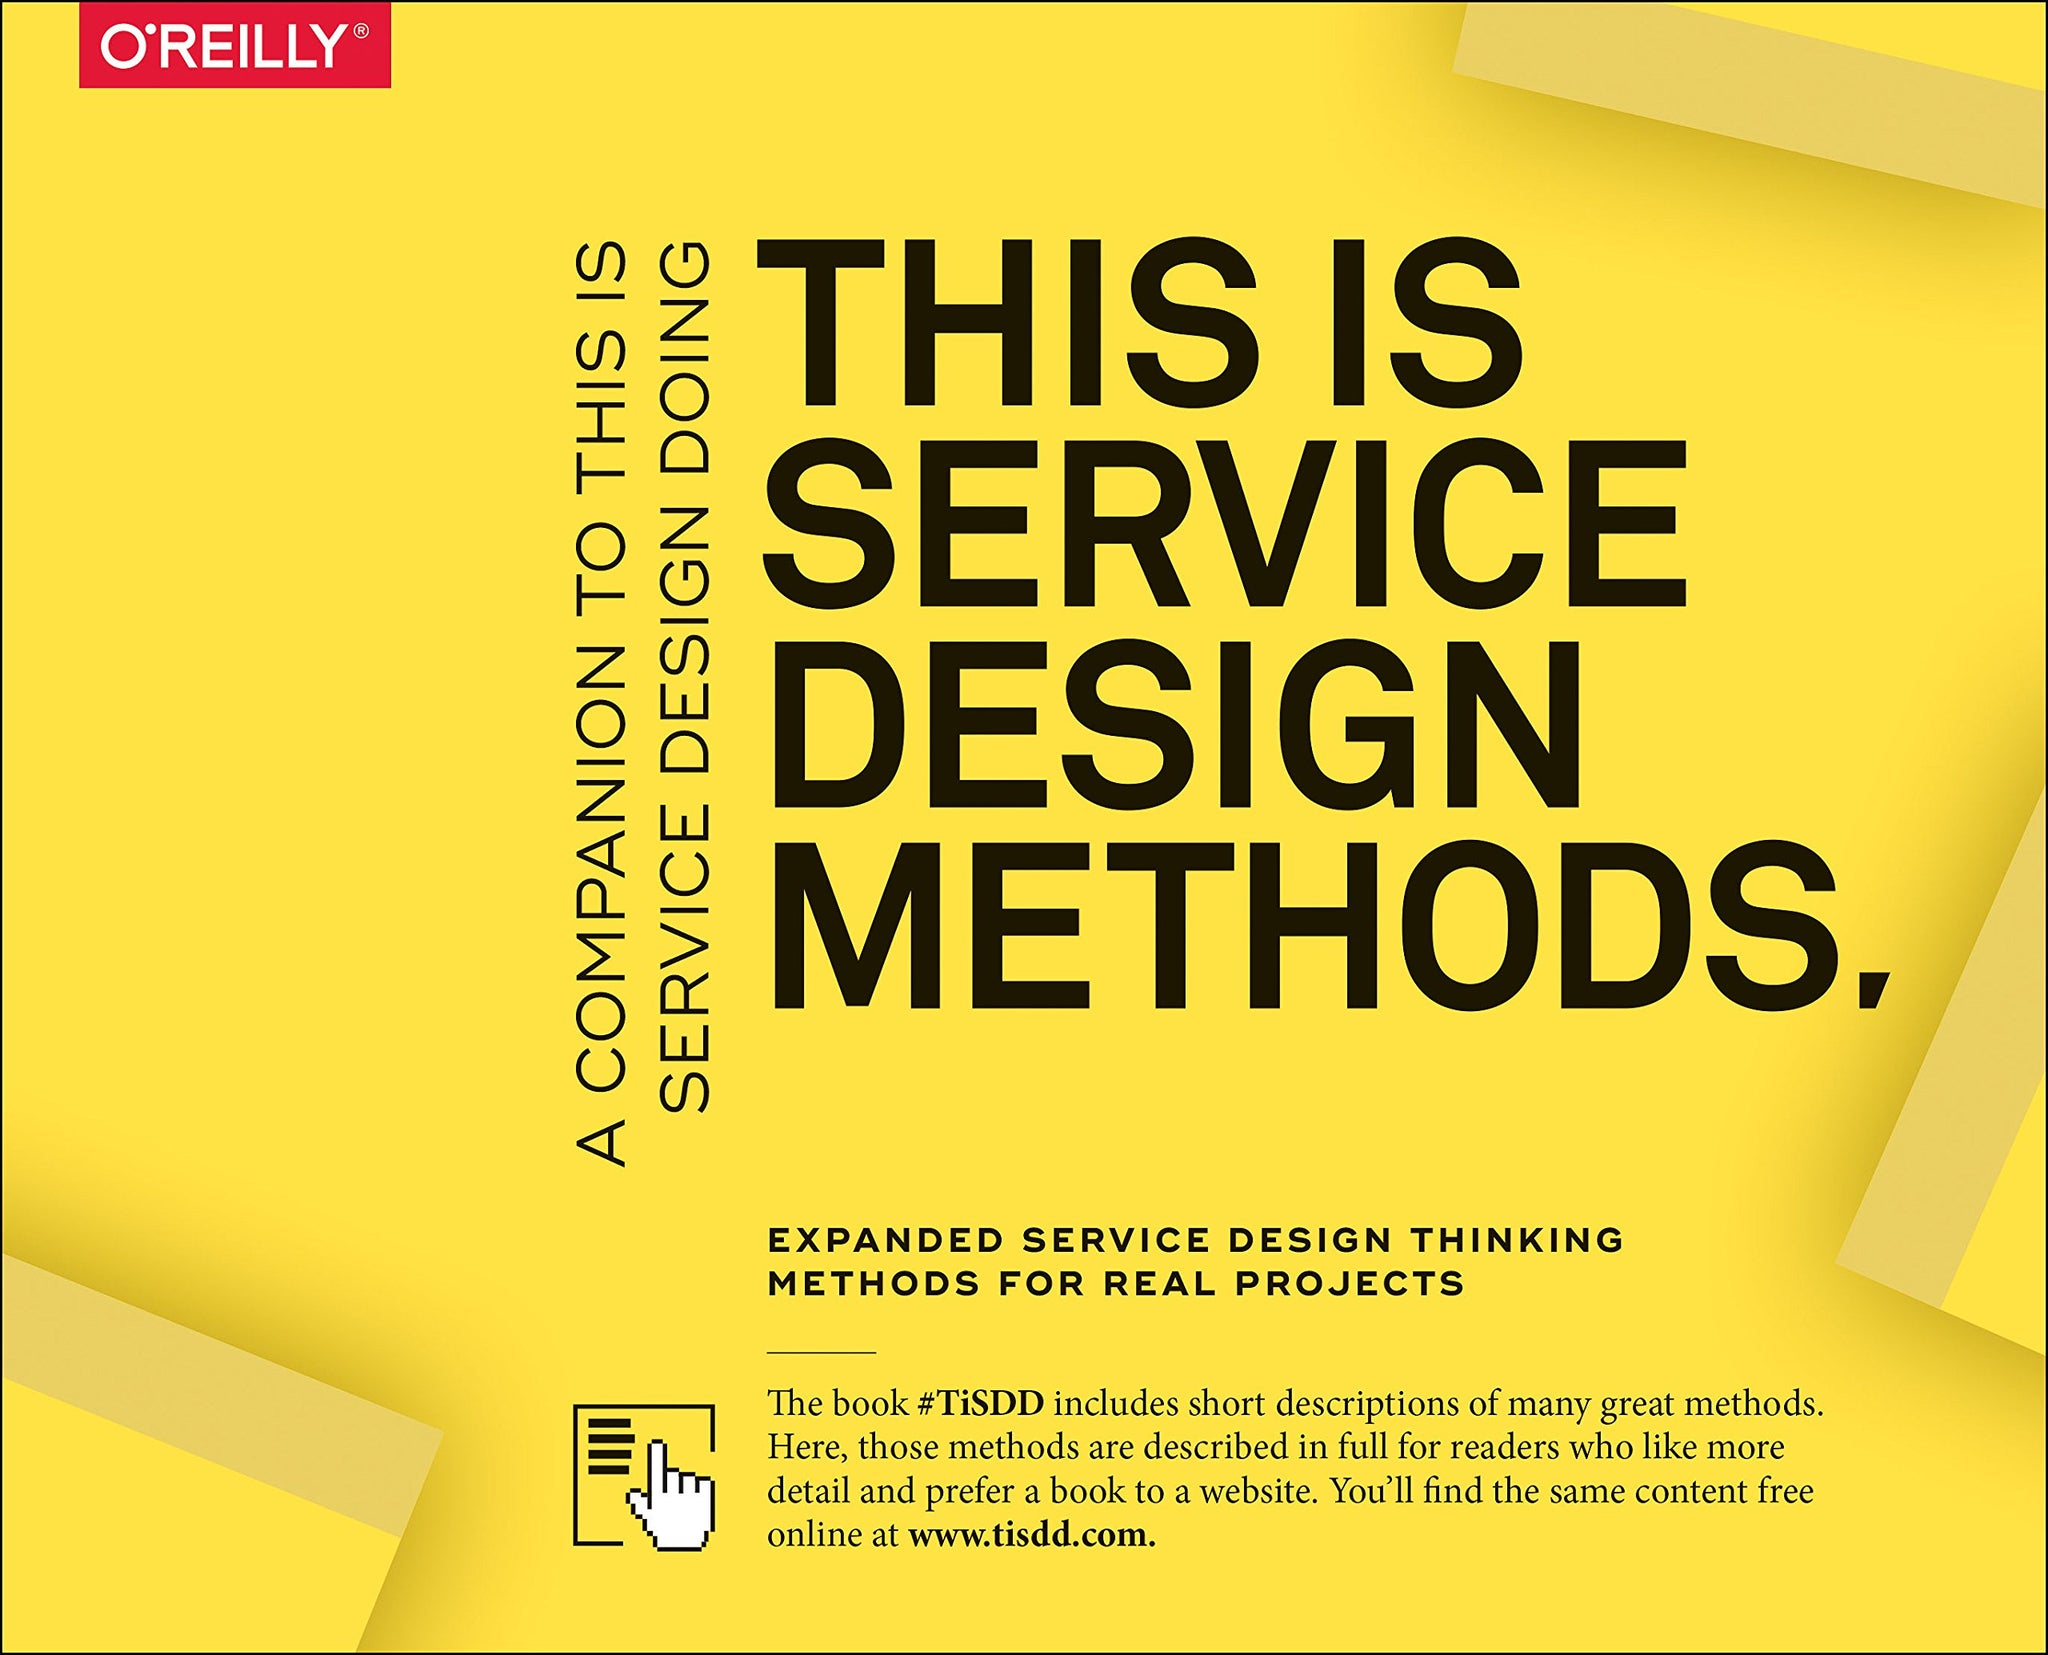 This is Service Design Methods